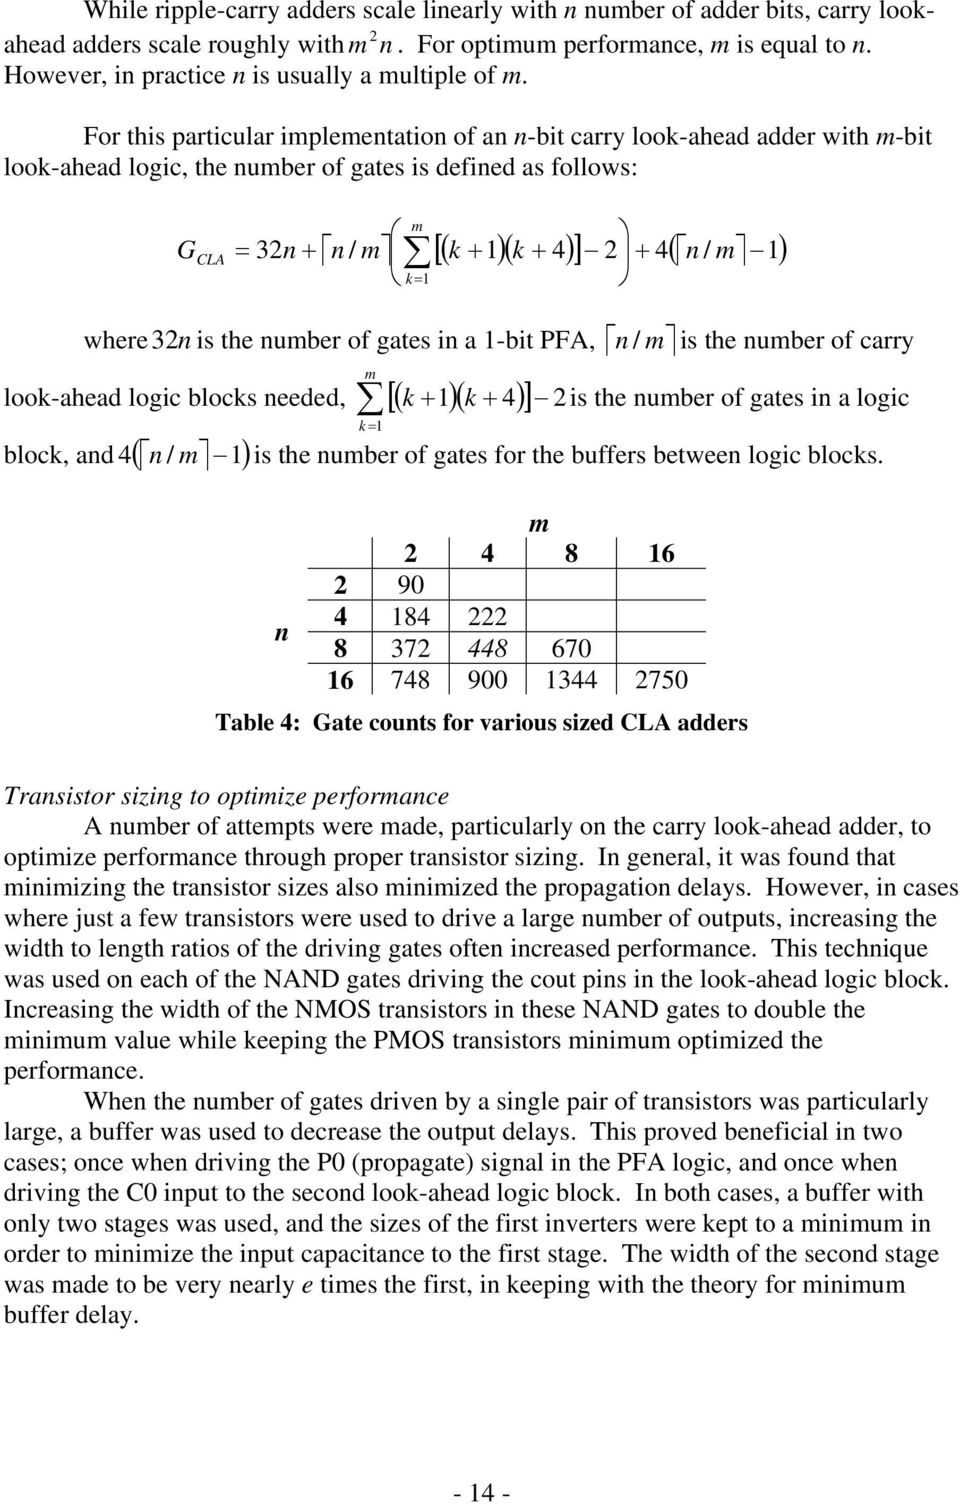 For this particular implementation of an n-bit carry loo-ahead adder with m-bit loo-ahead logic, the number of gates is defined as follows: G CLA m = 3n + = n / m [( + )( + 4) ] + 4( n / m ) where 3n